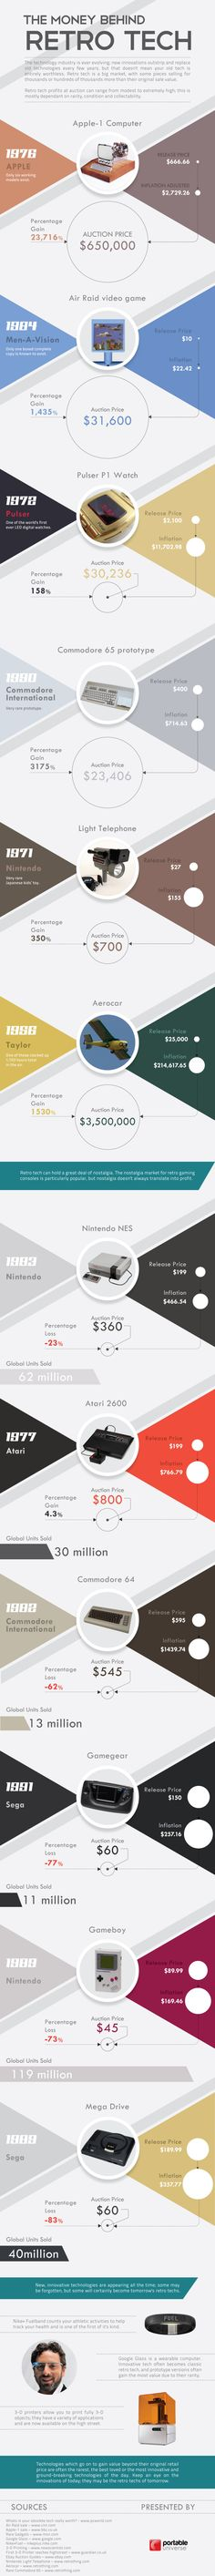 How Much Is Retro Tech Worth? | Infographic